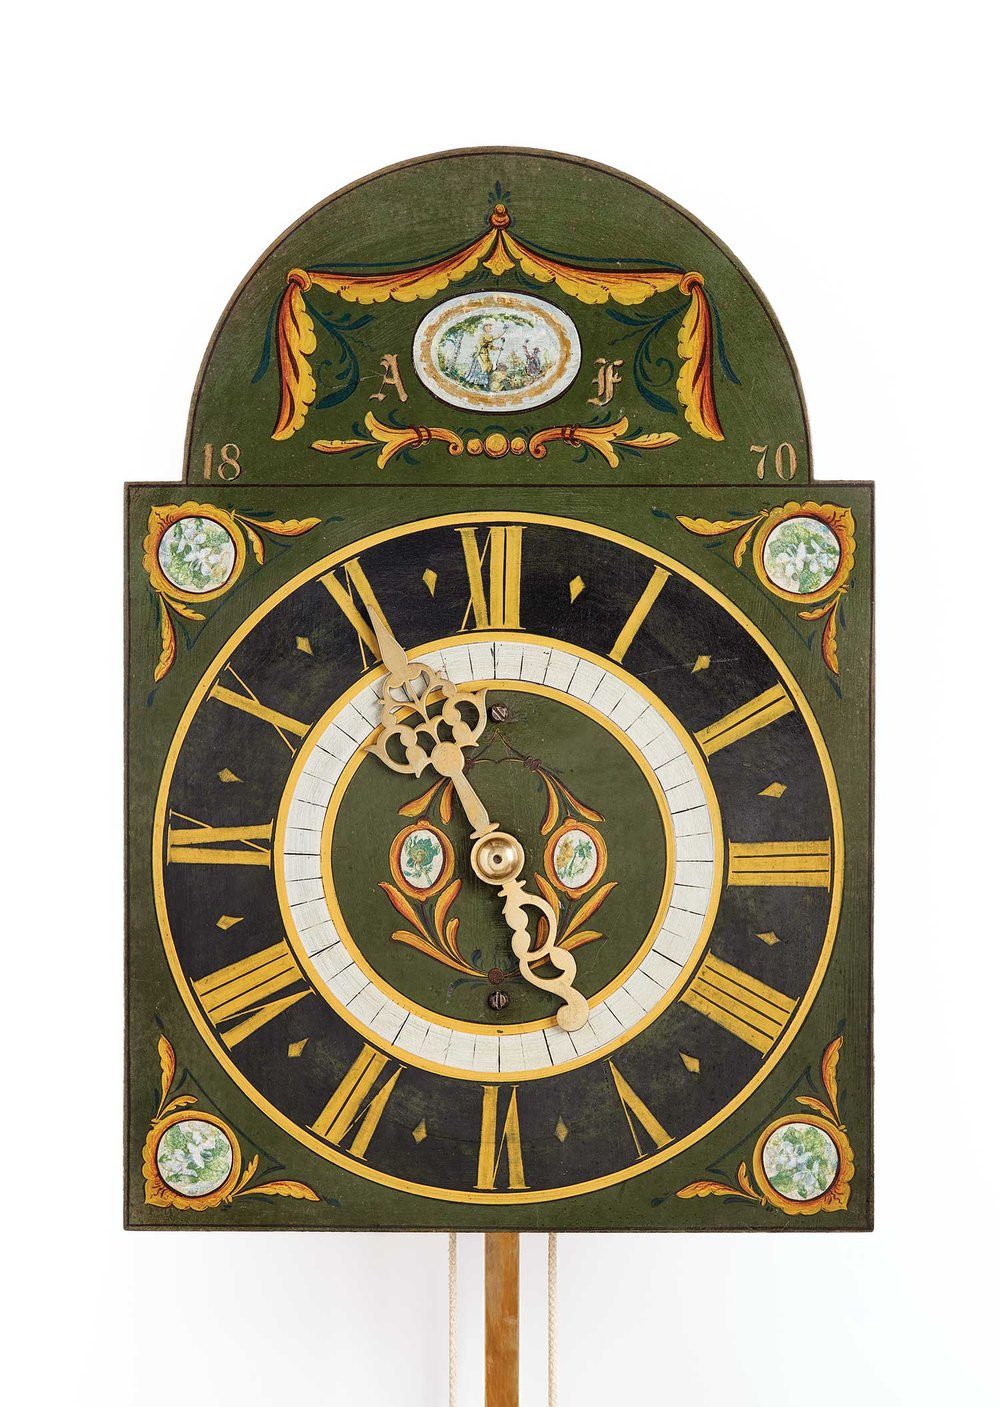 mandtler-clock-1870-mennonite-mc0220.jpg